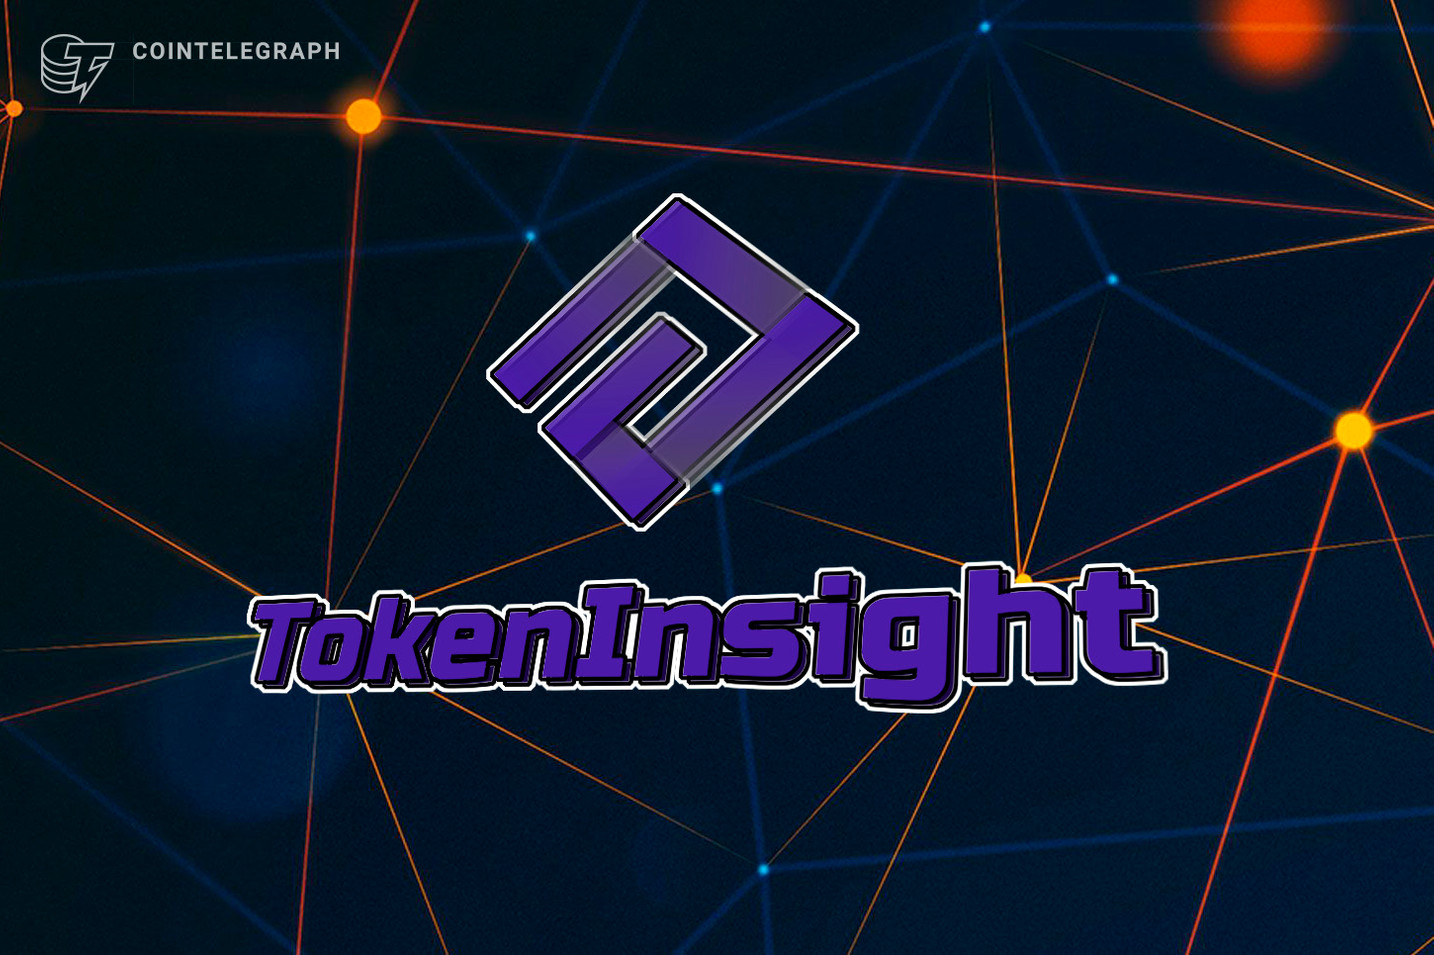 Event Overview: TokenInsight Top Hash Mining Industry Summit